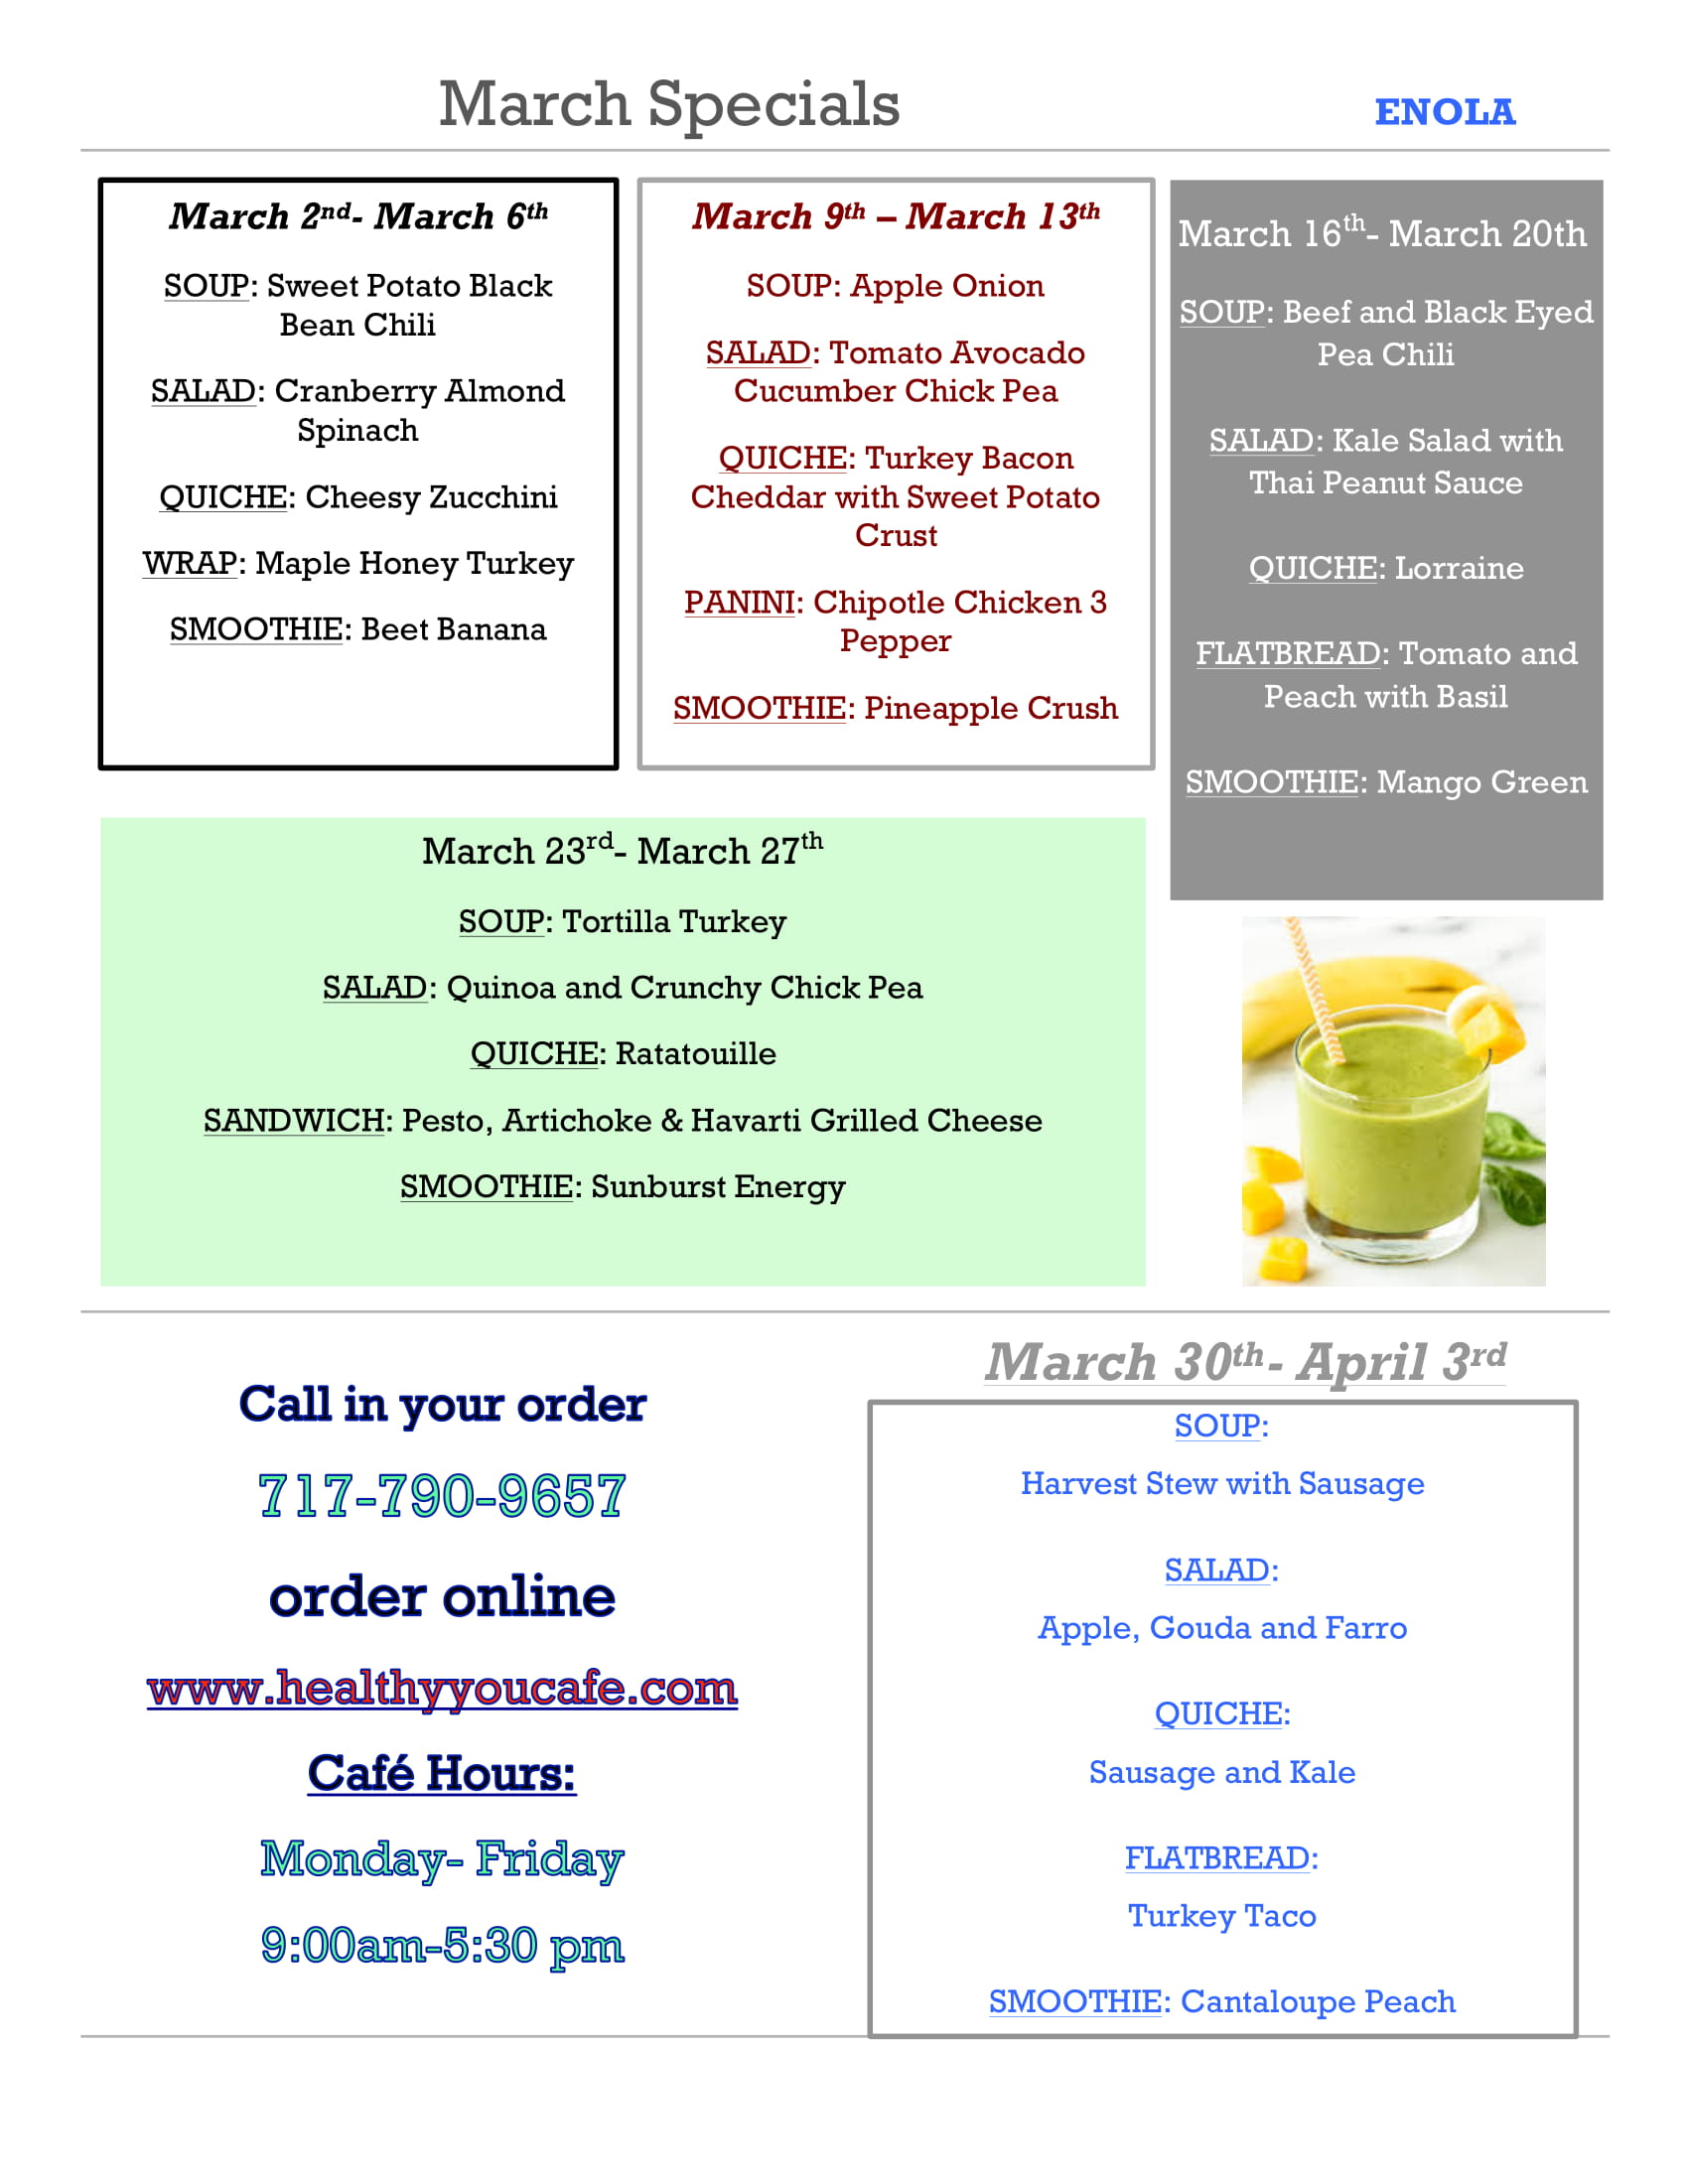 March specials. Click above for a readable version